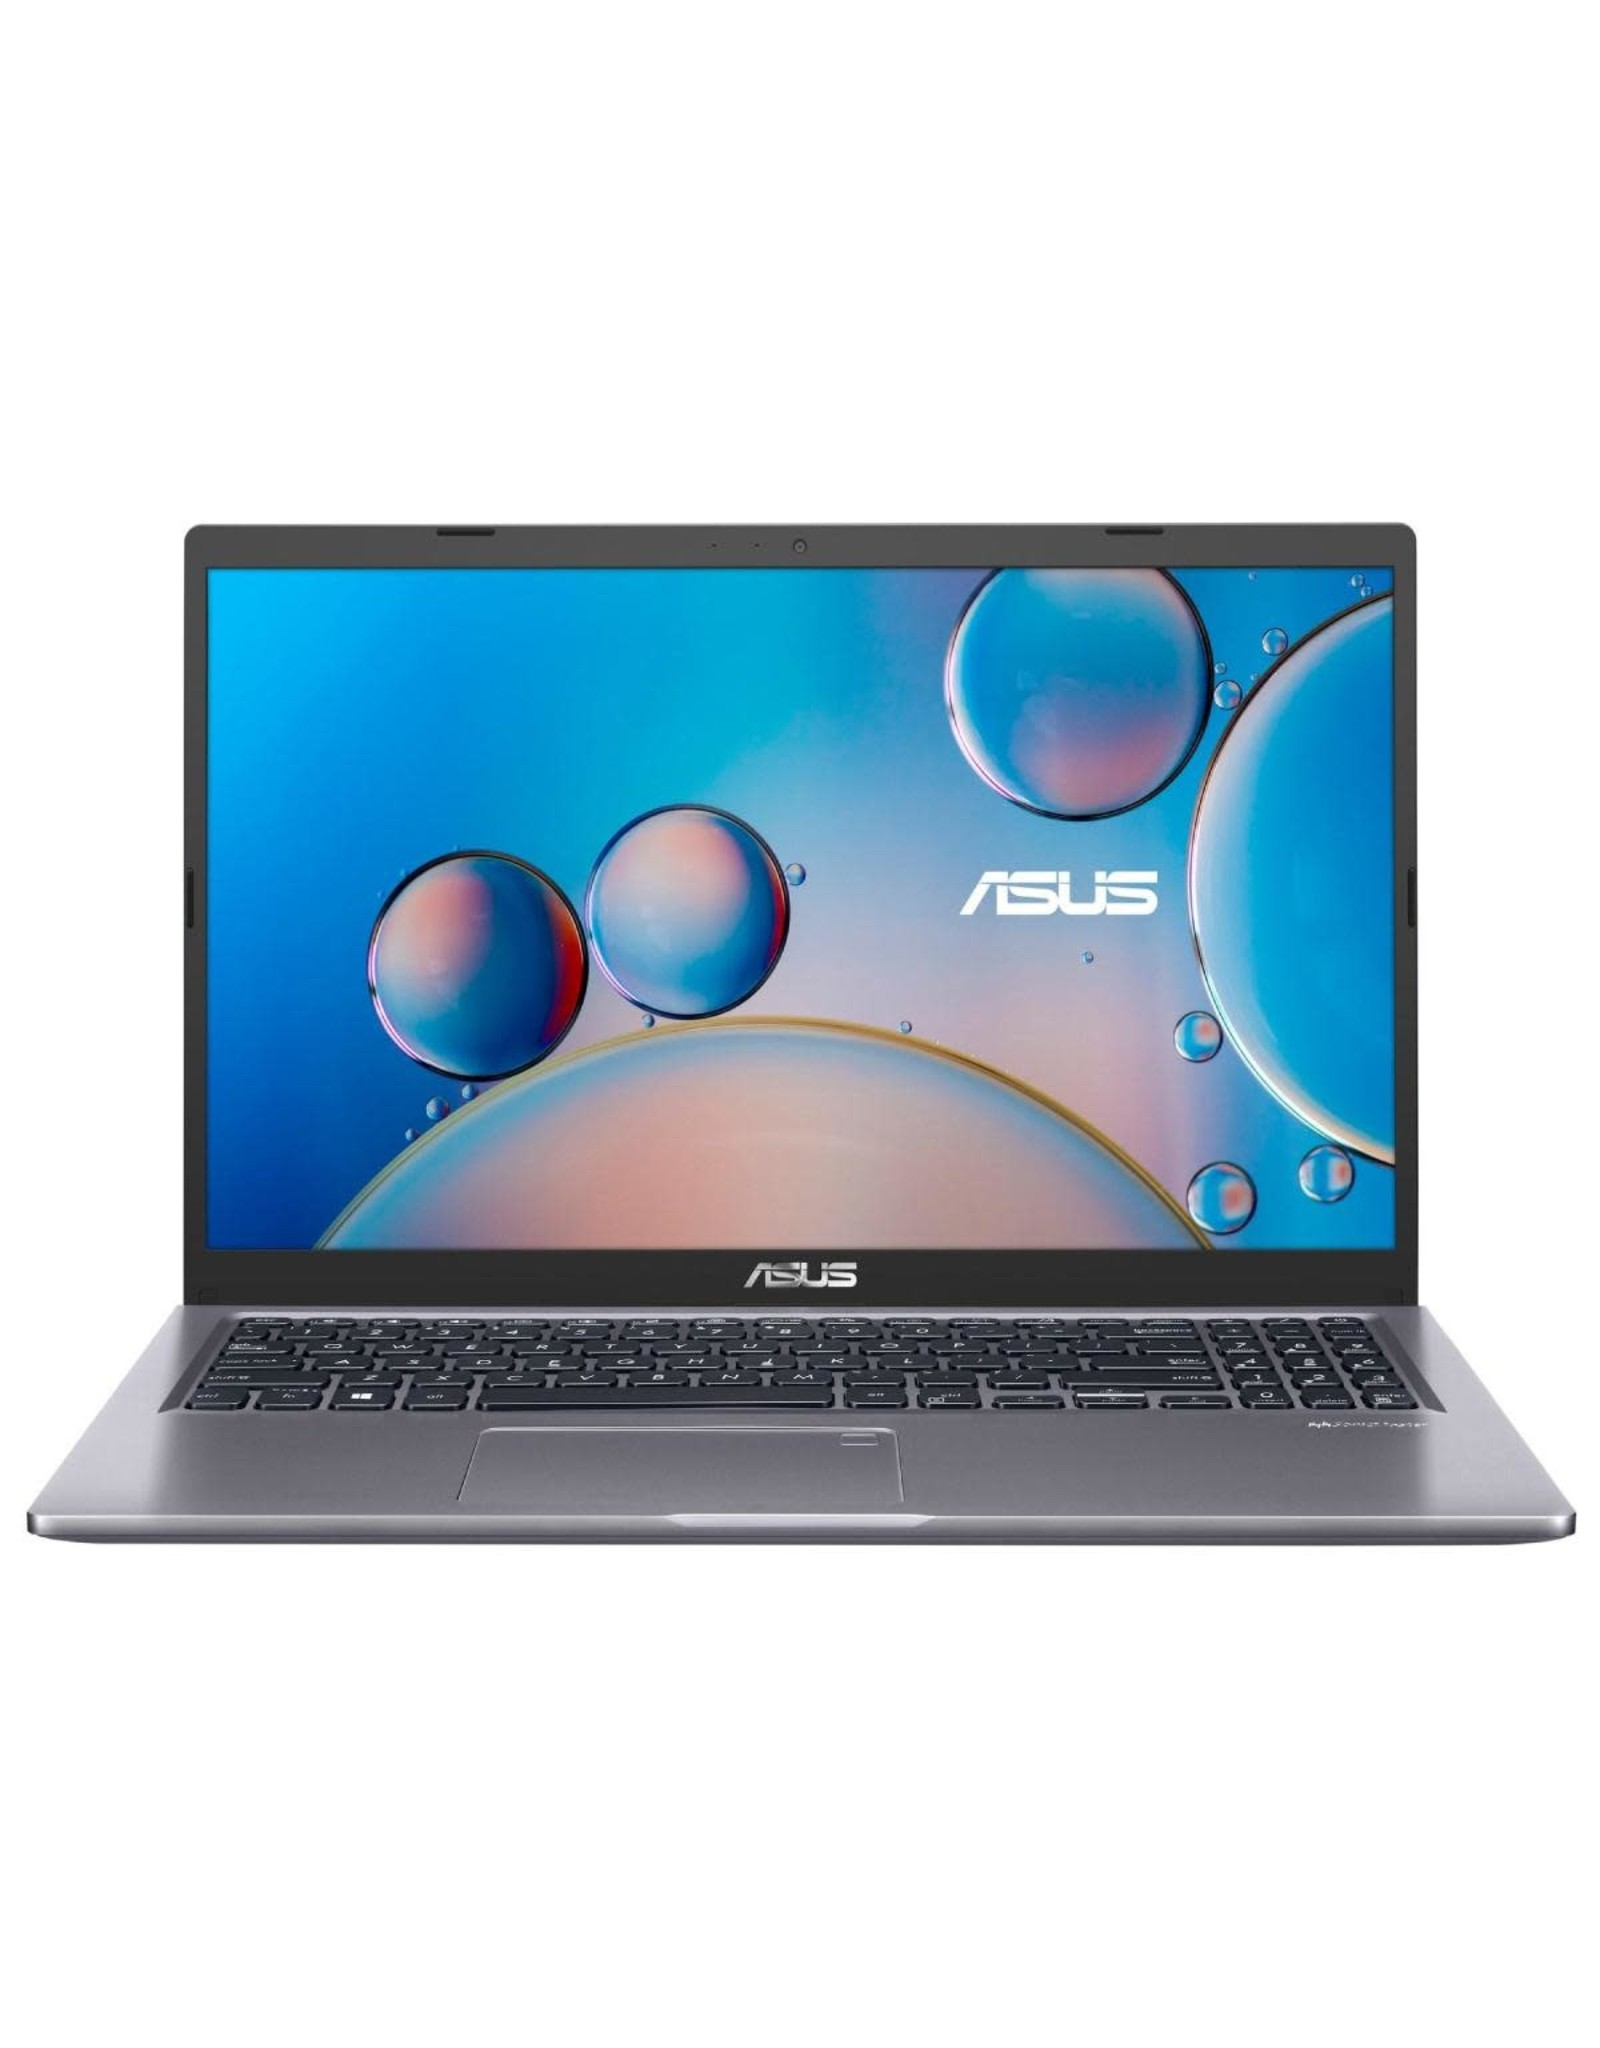 ASUS Laptop - ASUS VivoBook 15 - 15.6inch, Core i3, 8GB DDR4, 256GB SSD